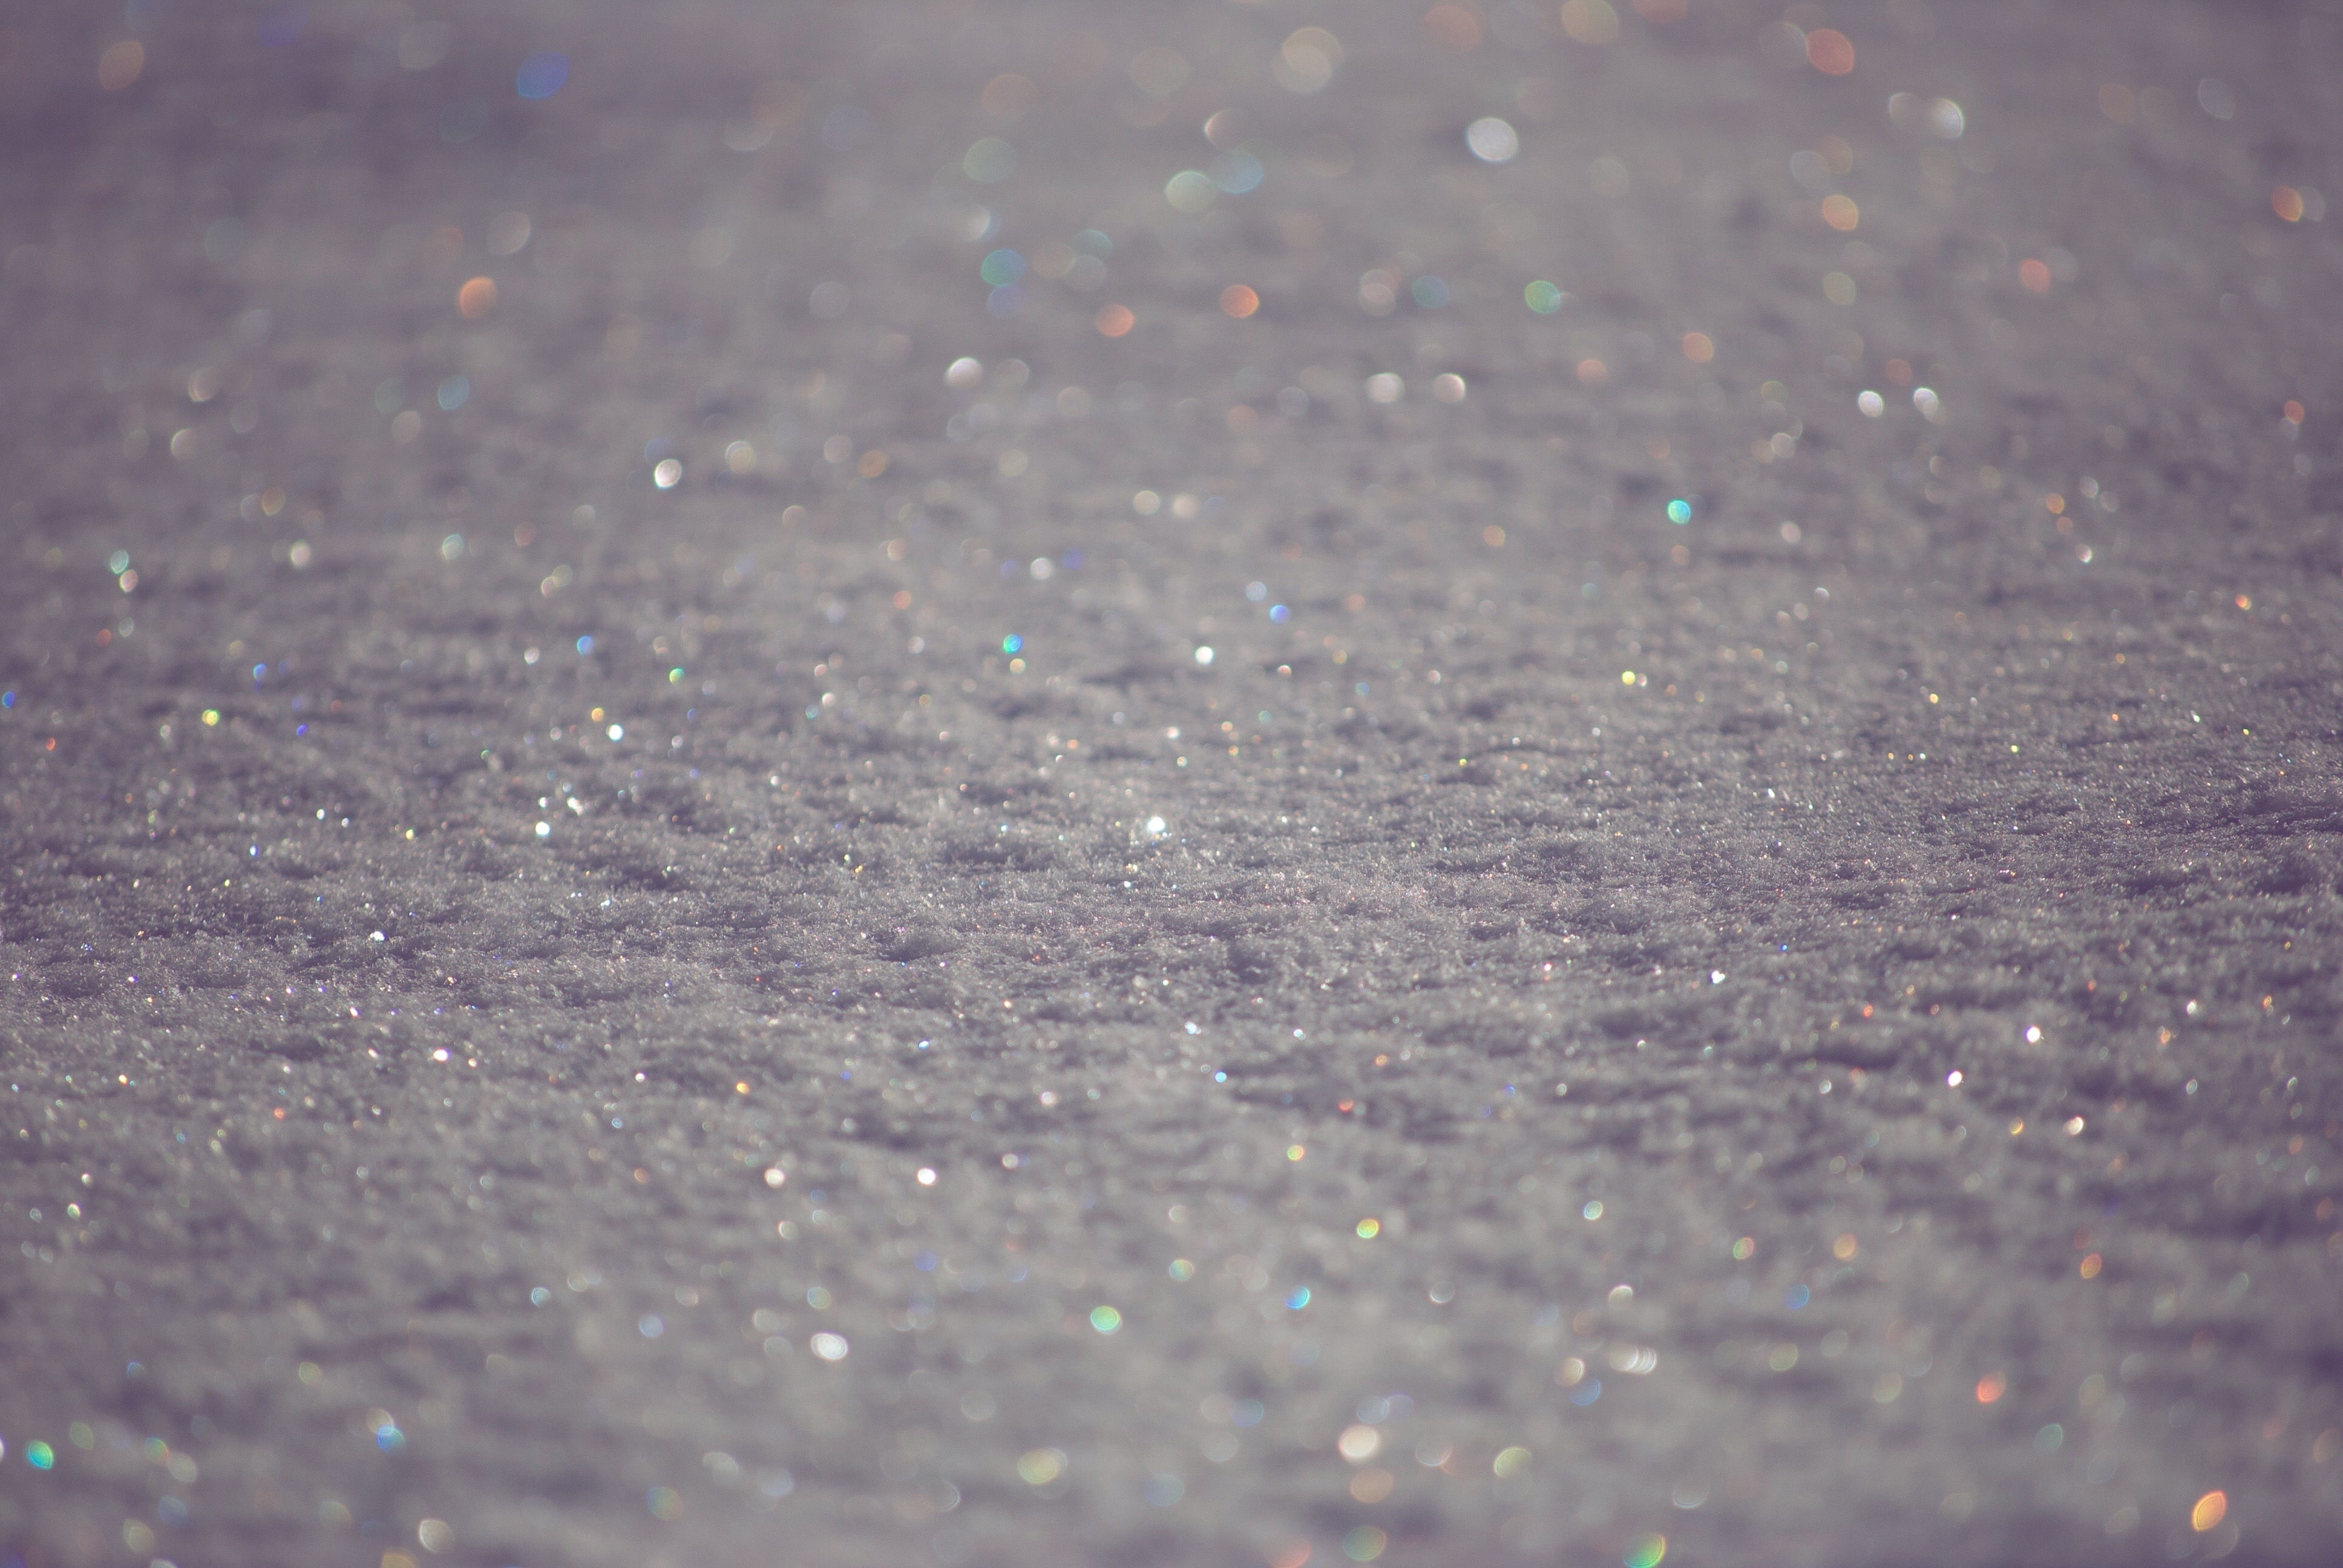 Glitter Wallpapers Free Hd Download 500 Hq Unsplash